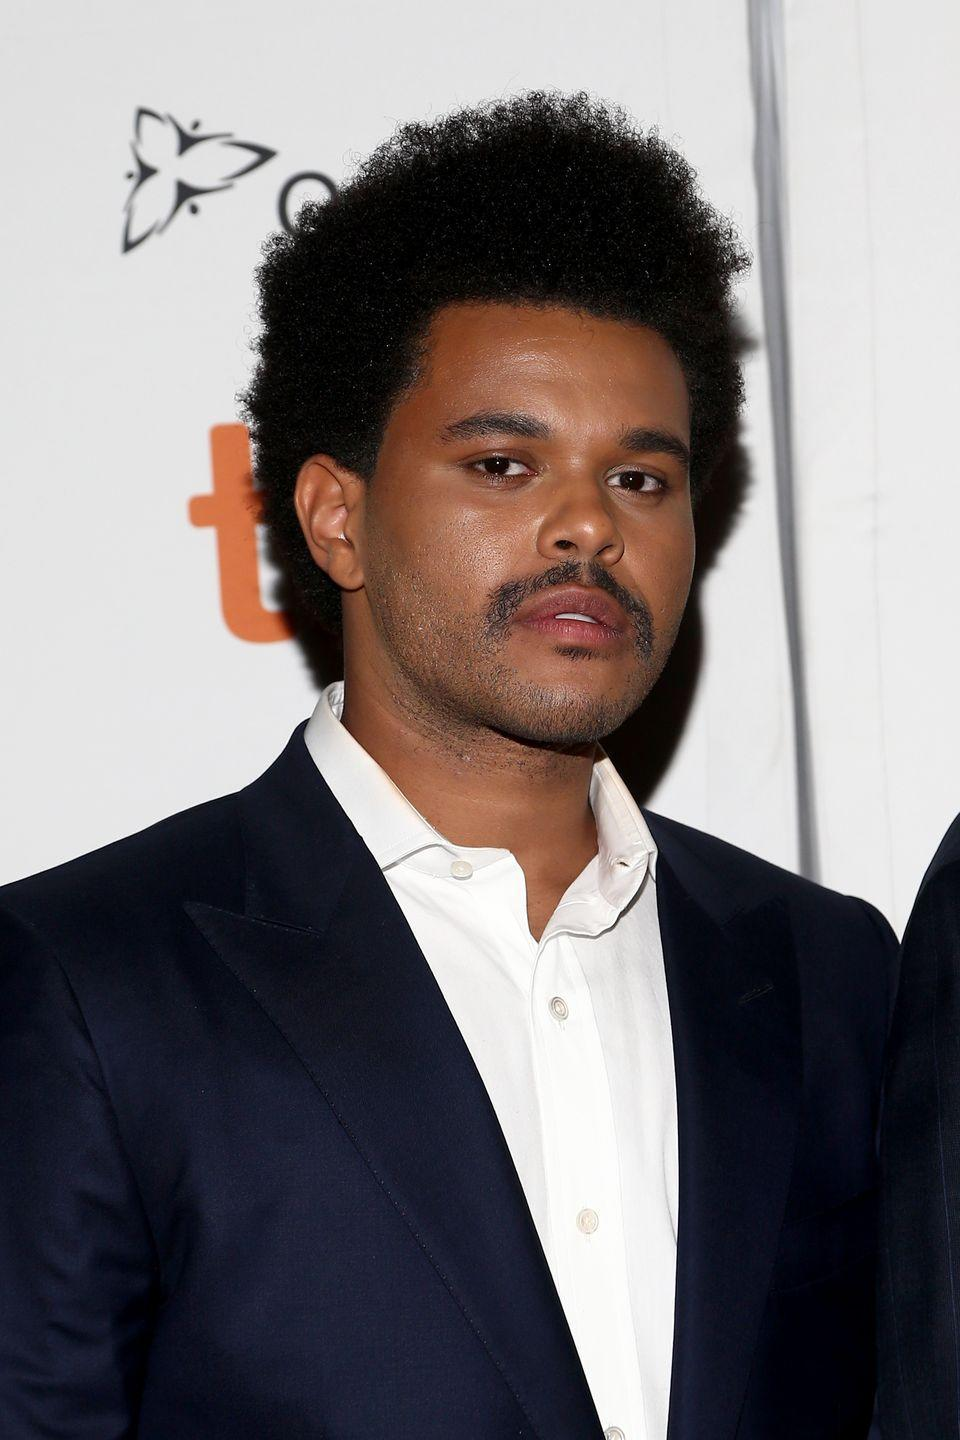 <p>The most jarring thing about The Weeknd's September 2019 look? The mustache that replaced his signature trimmed beard. The short fro was brand new as well. </p>